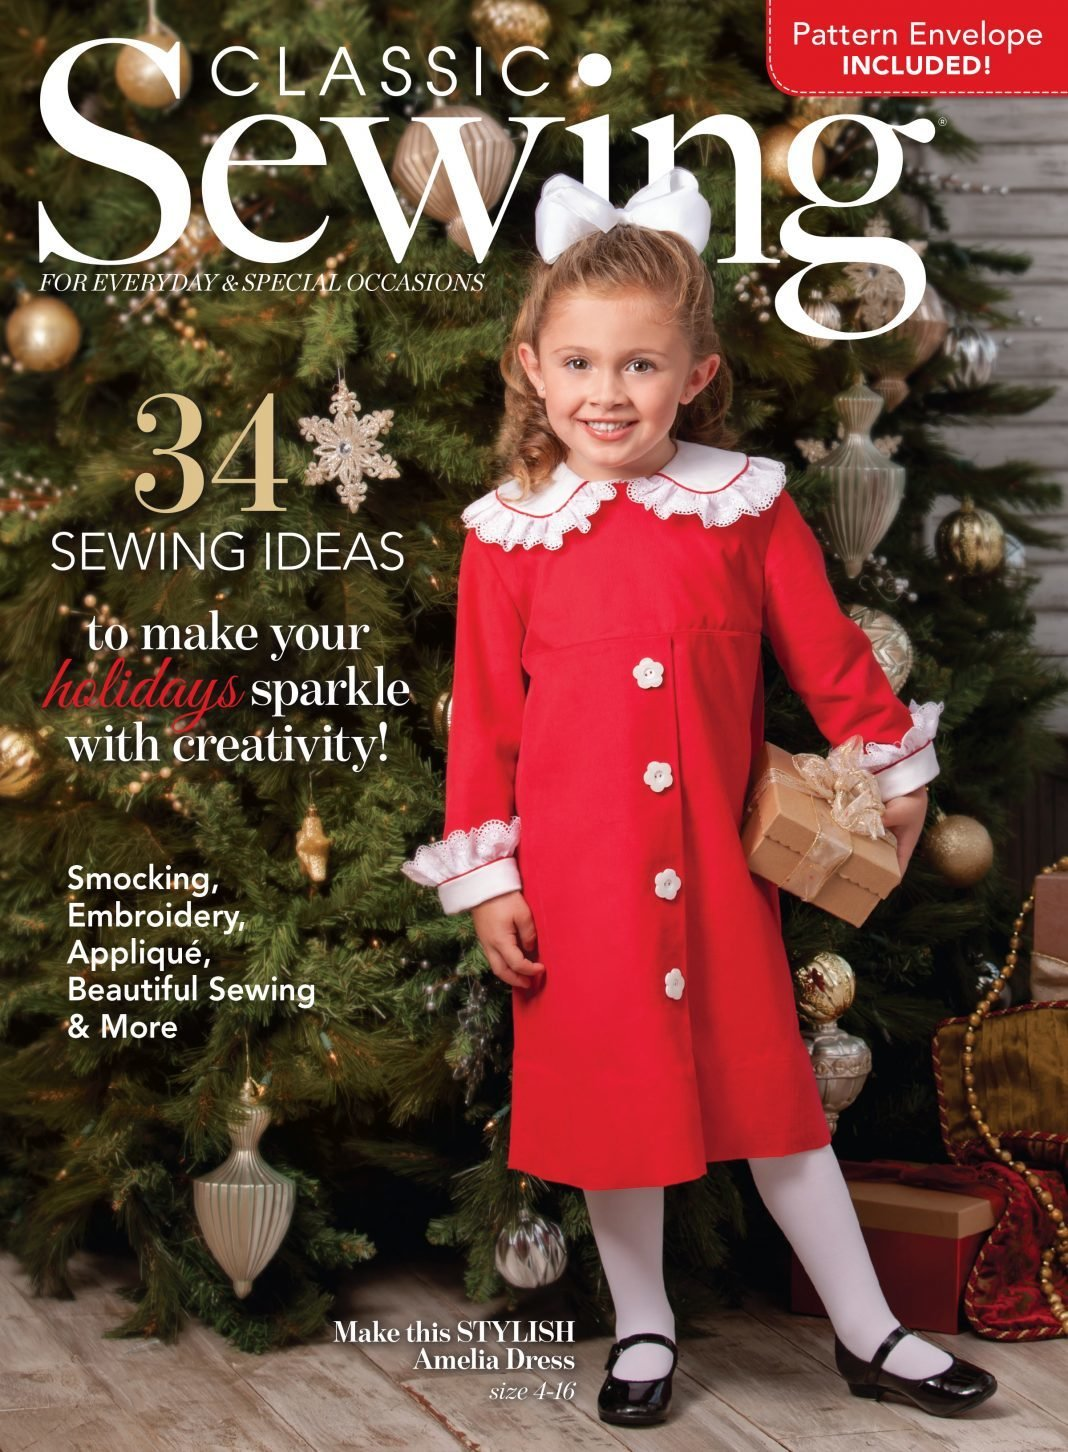 Sewing magazine winter issue 2016 classic sewing magazine winter issue 2016 jeuxipadfo Image collections